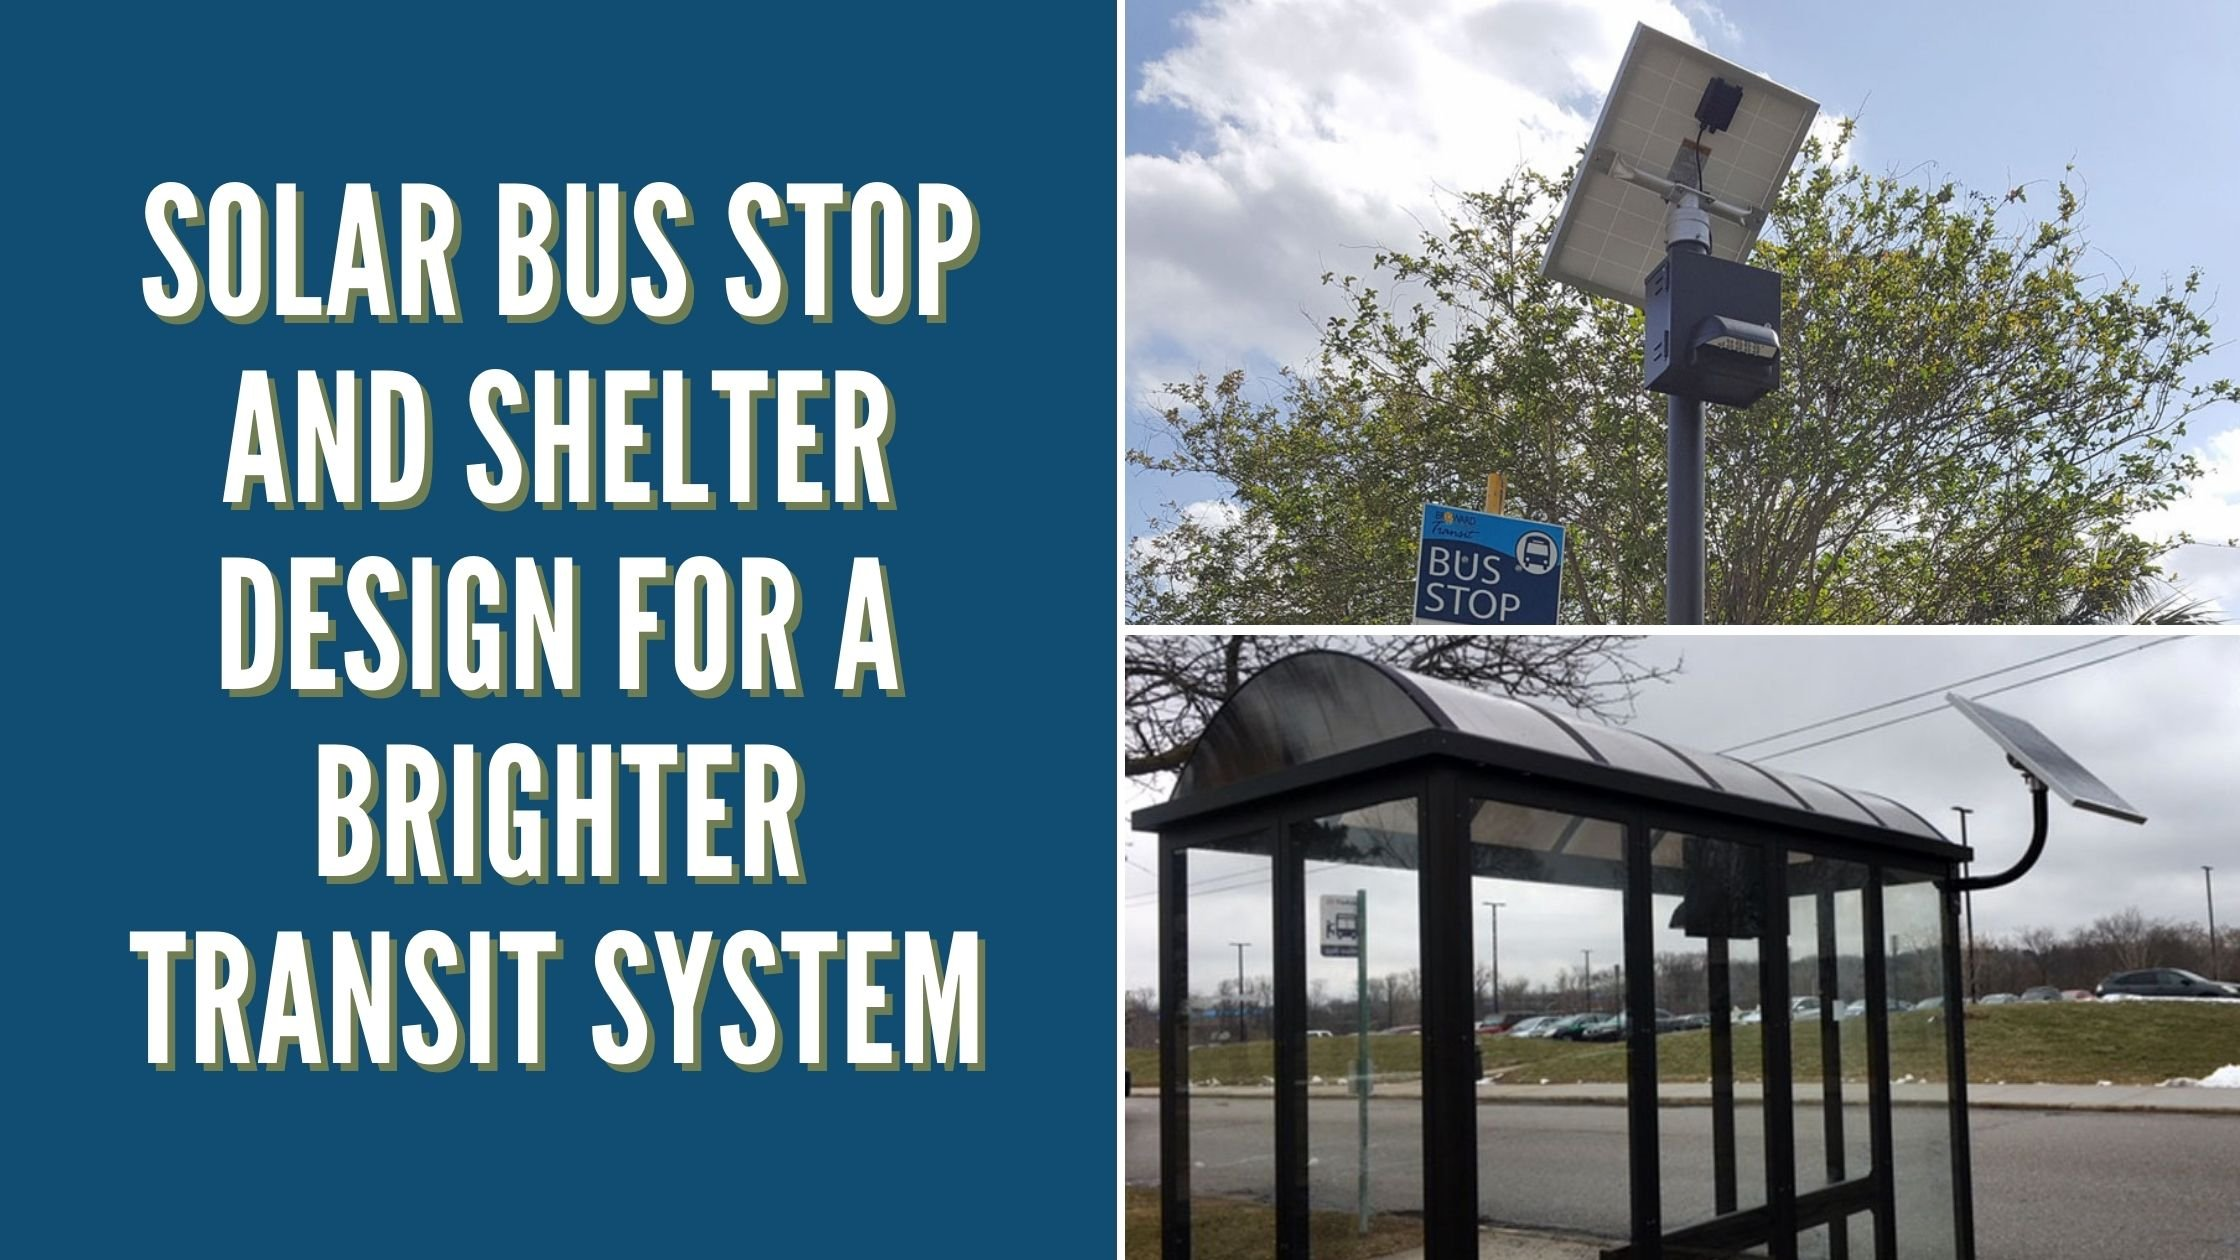 Solar Bus Stop and Shelter Design for a Brighter Transit System